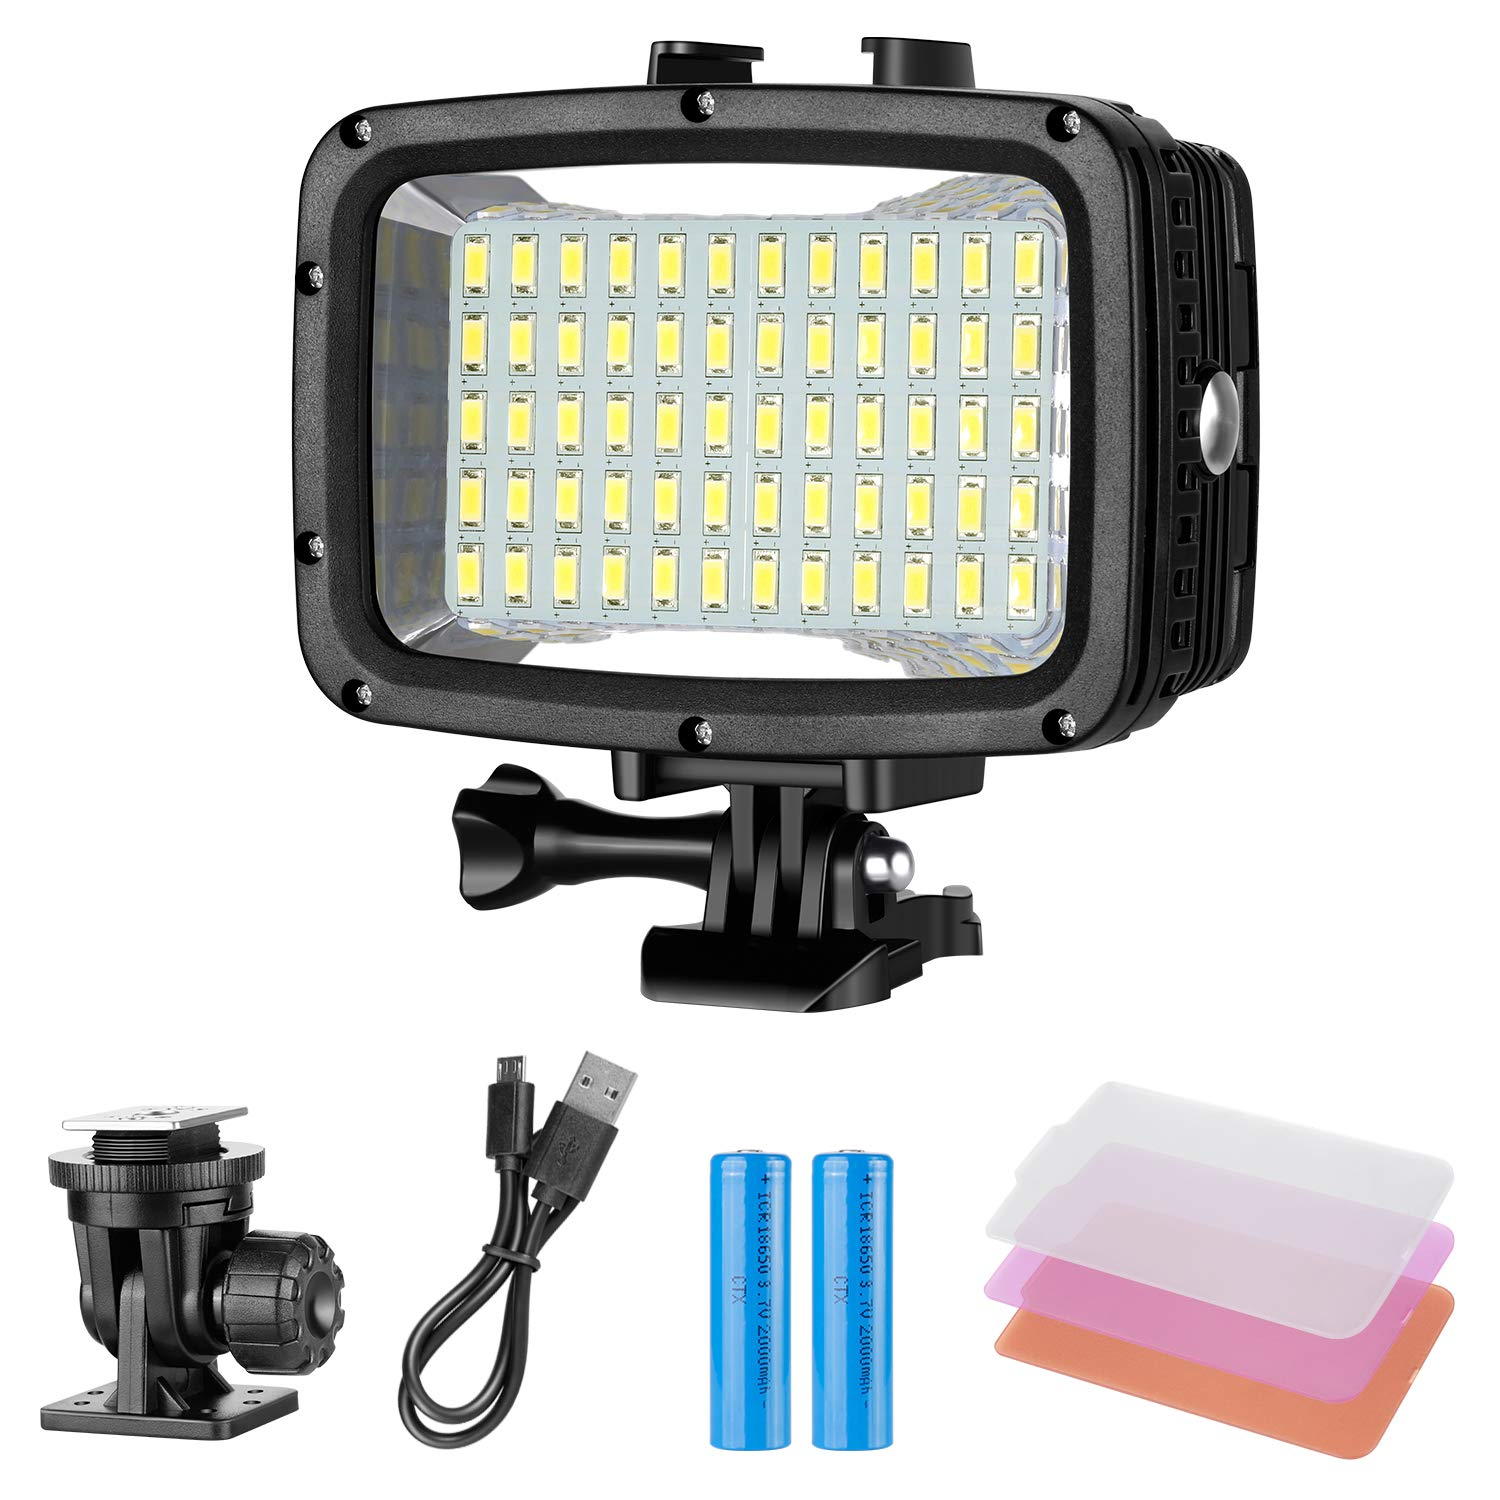 Neewer Underwater Lights Dive Light 60 LED Dimmable Waterproof LED Video Light 131feet/40m for GoPro Hero 6 5 4 Hero Session Canon Nikon Pentax and Other Action and DSLR Cameras (Battery Included) 10094174